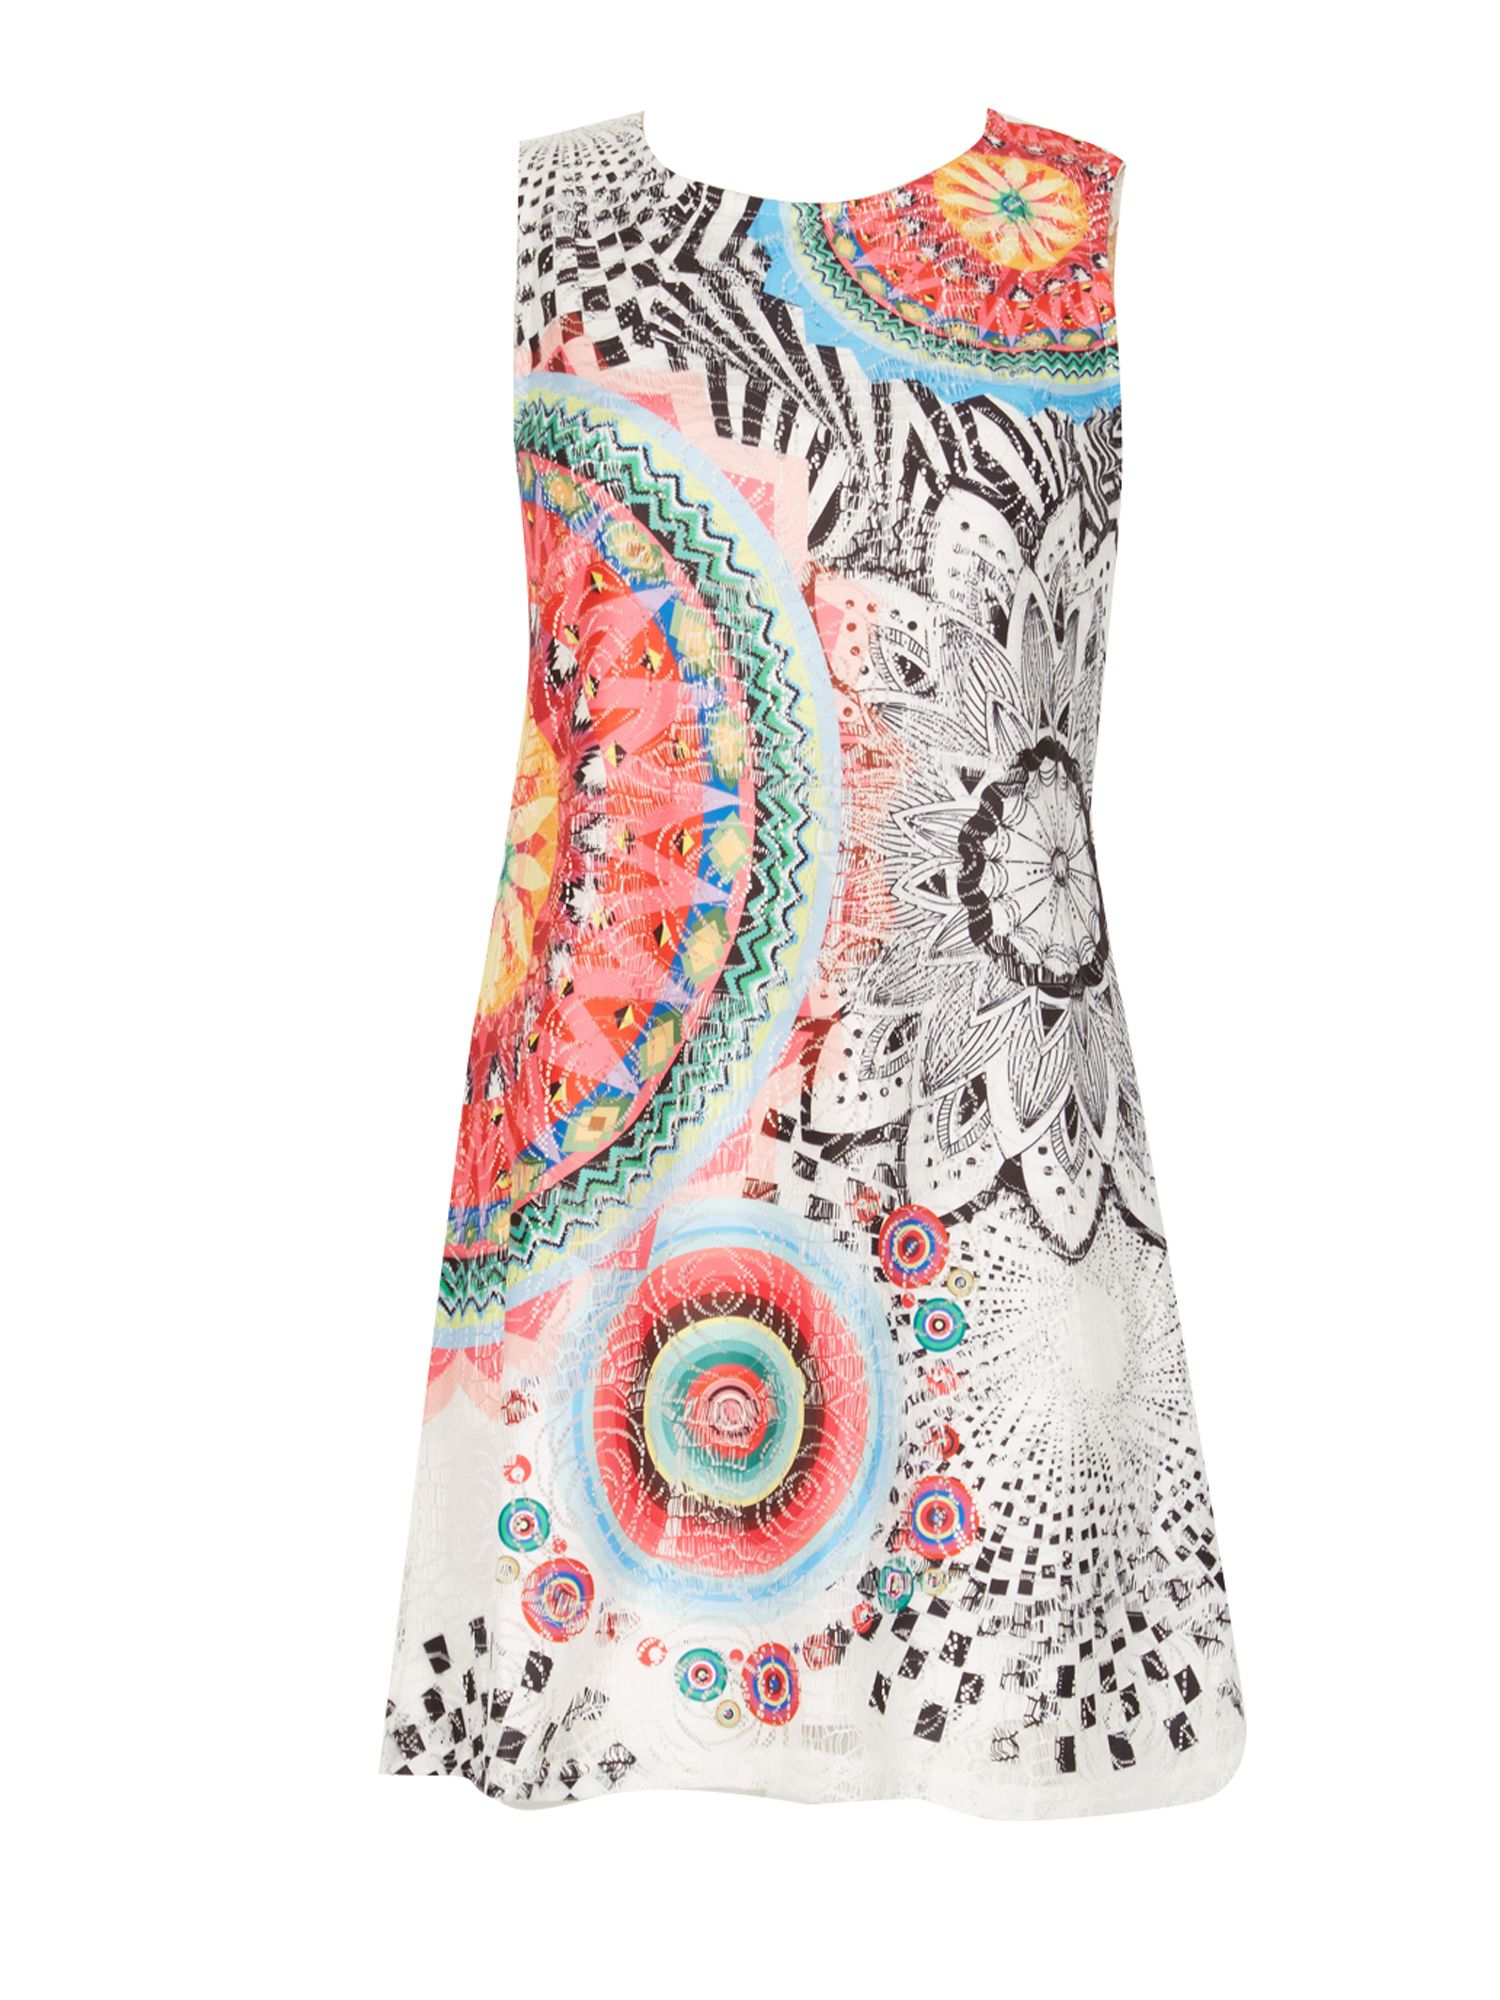 Izabel London London Kaleidoscope Print Shift Dress, Multi-Coloured